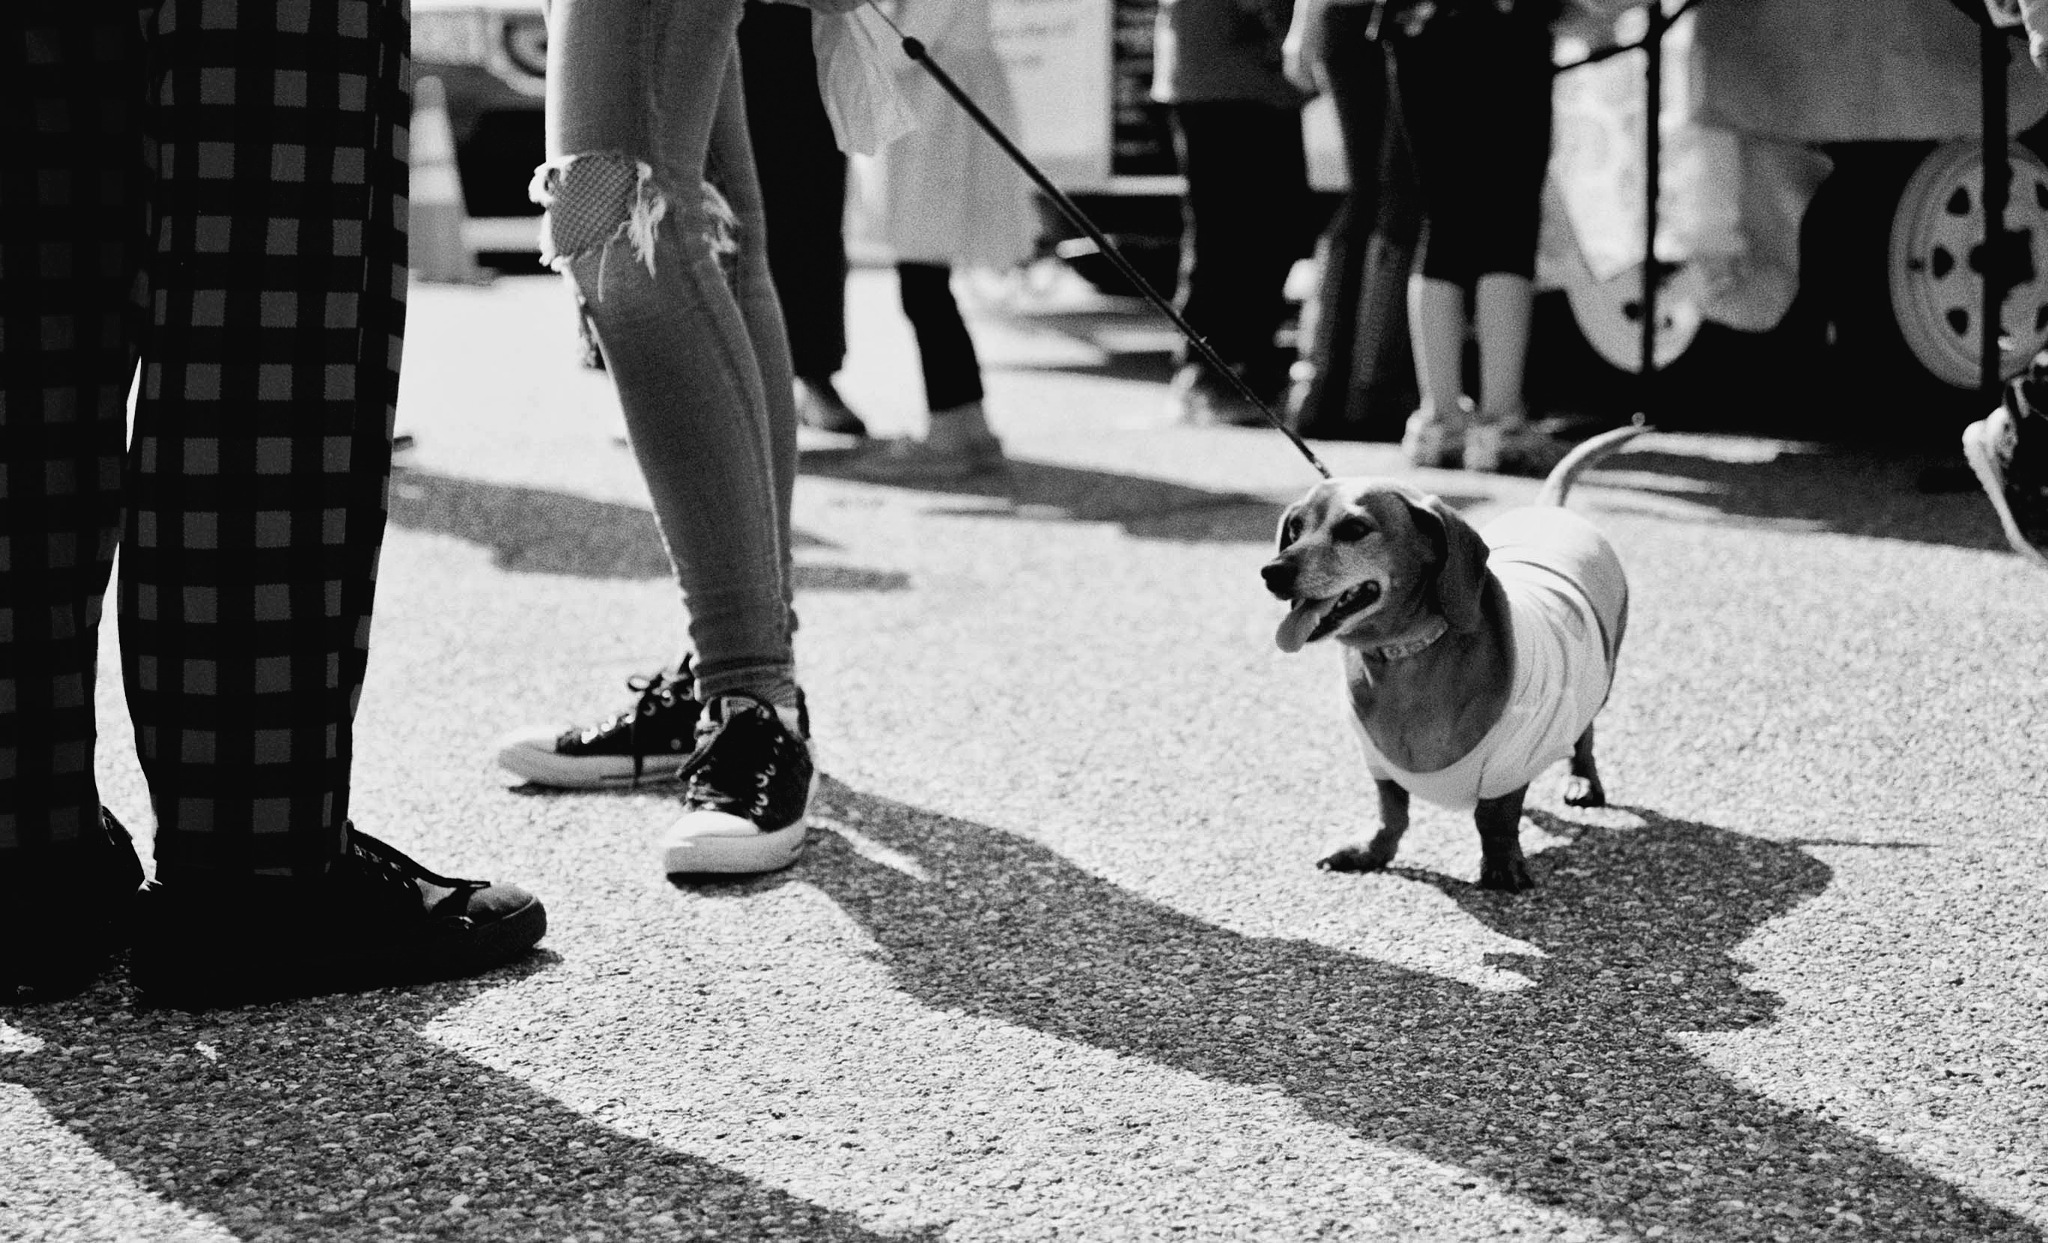 Dog in a crowd by Luis Lopez